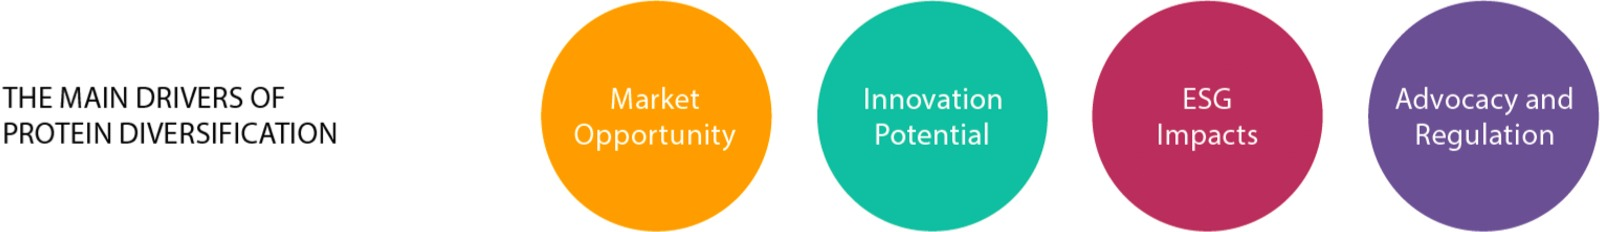 The main drivers of protein diversification: market opportunity, innovation potential, ESG impacts and advocacy and regulation.